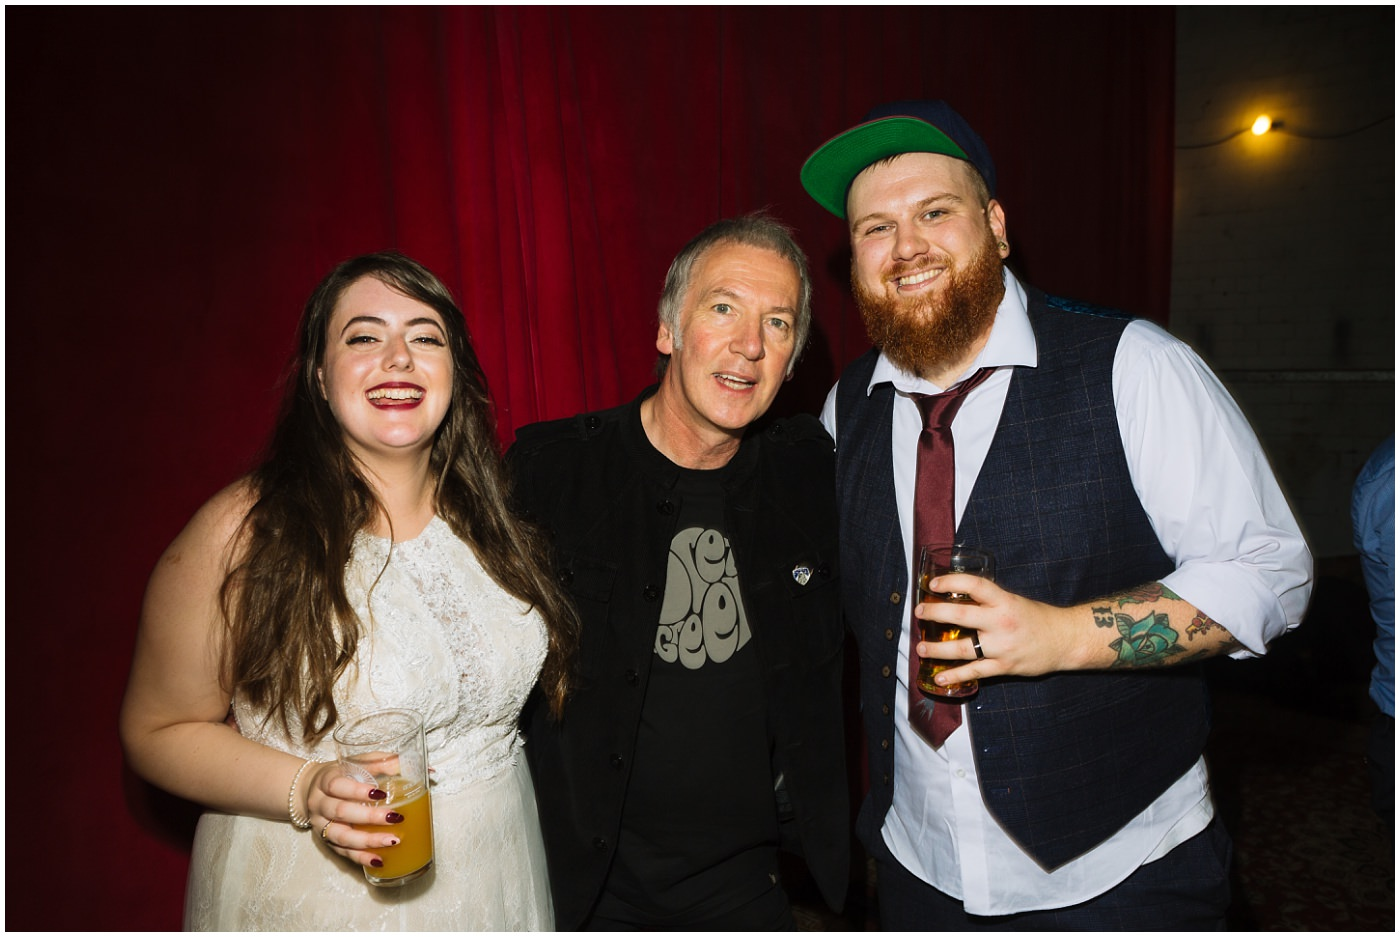 Clint Boon at Manchester Alternative Wedding